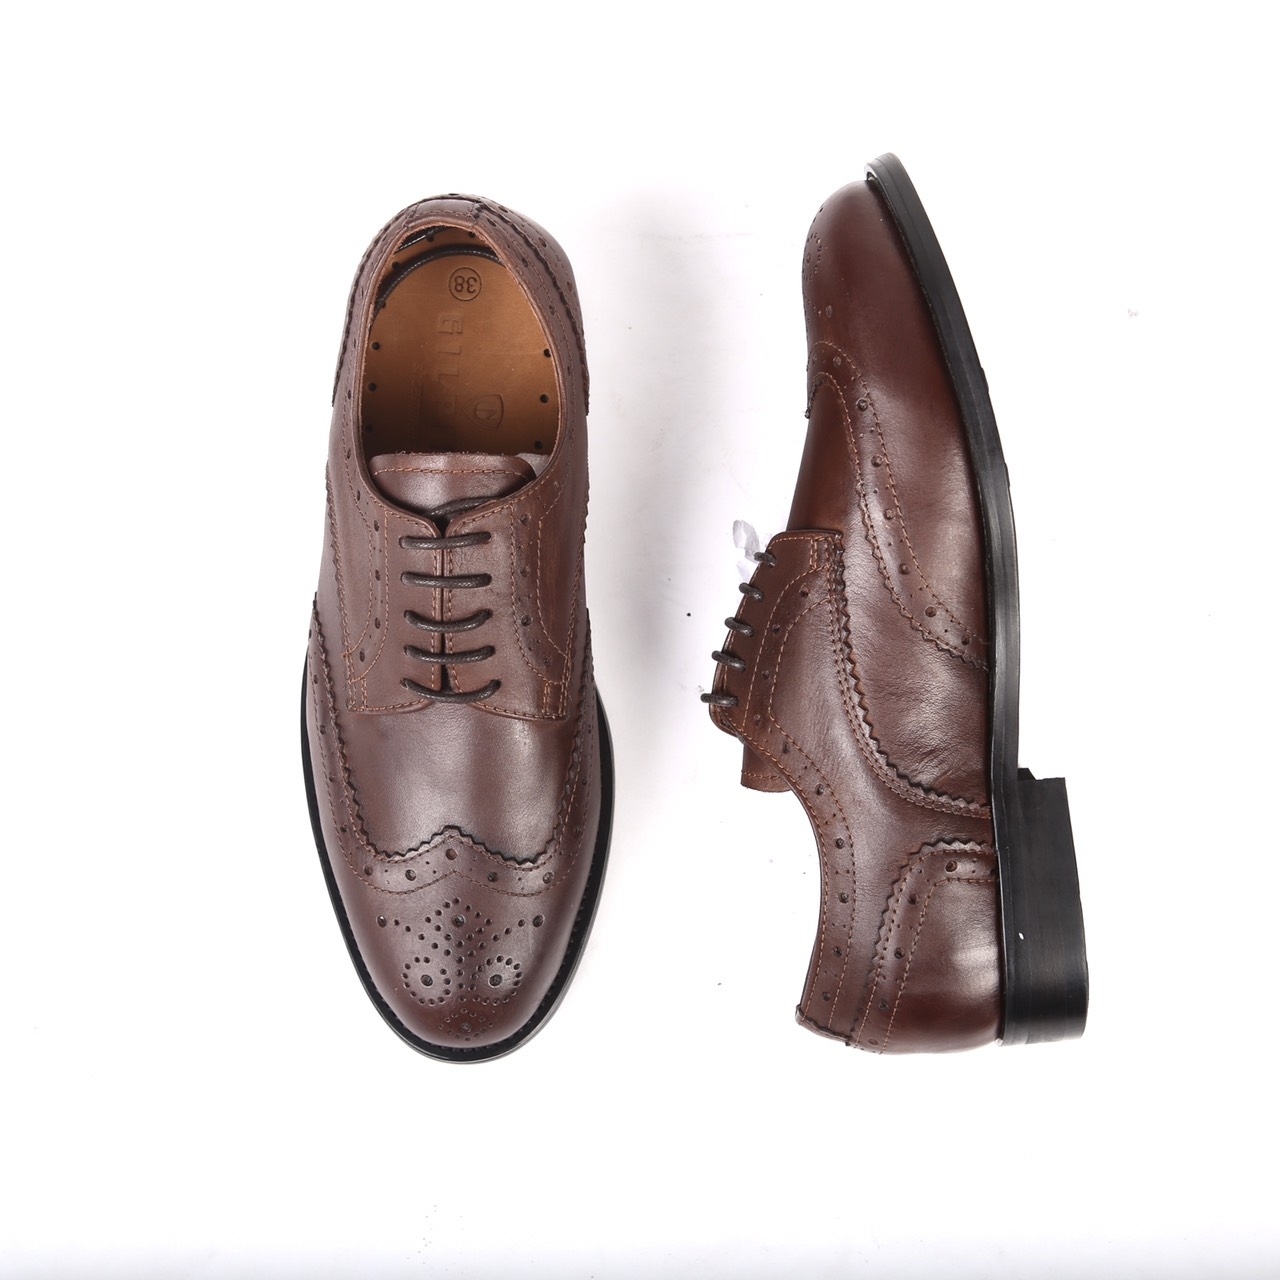 Wing 13 - Dark brown leather